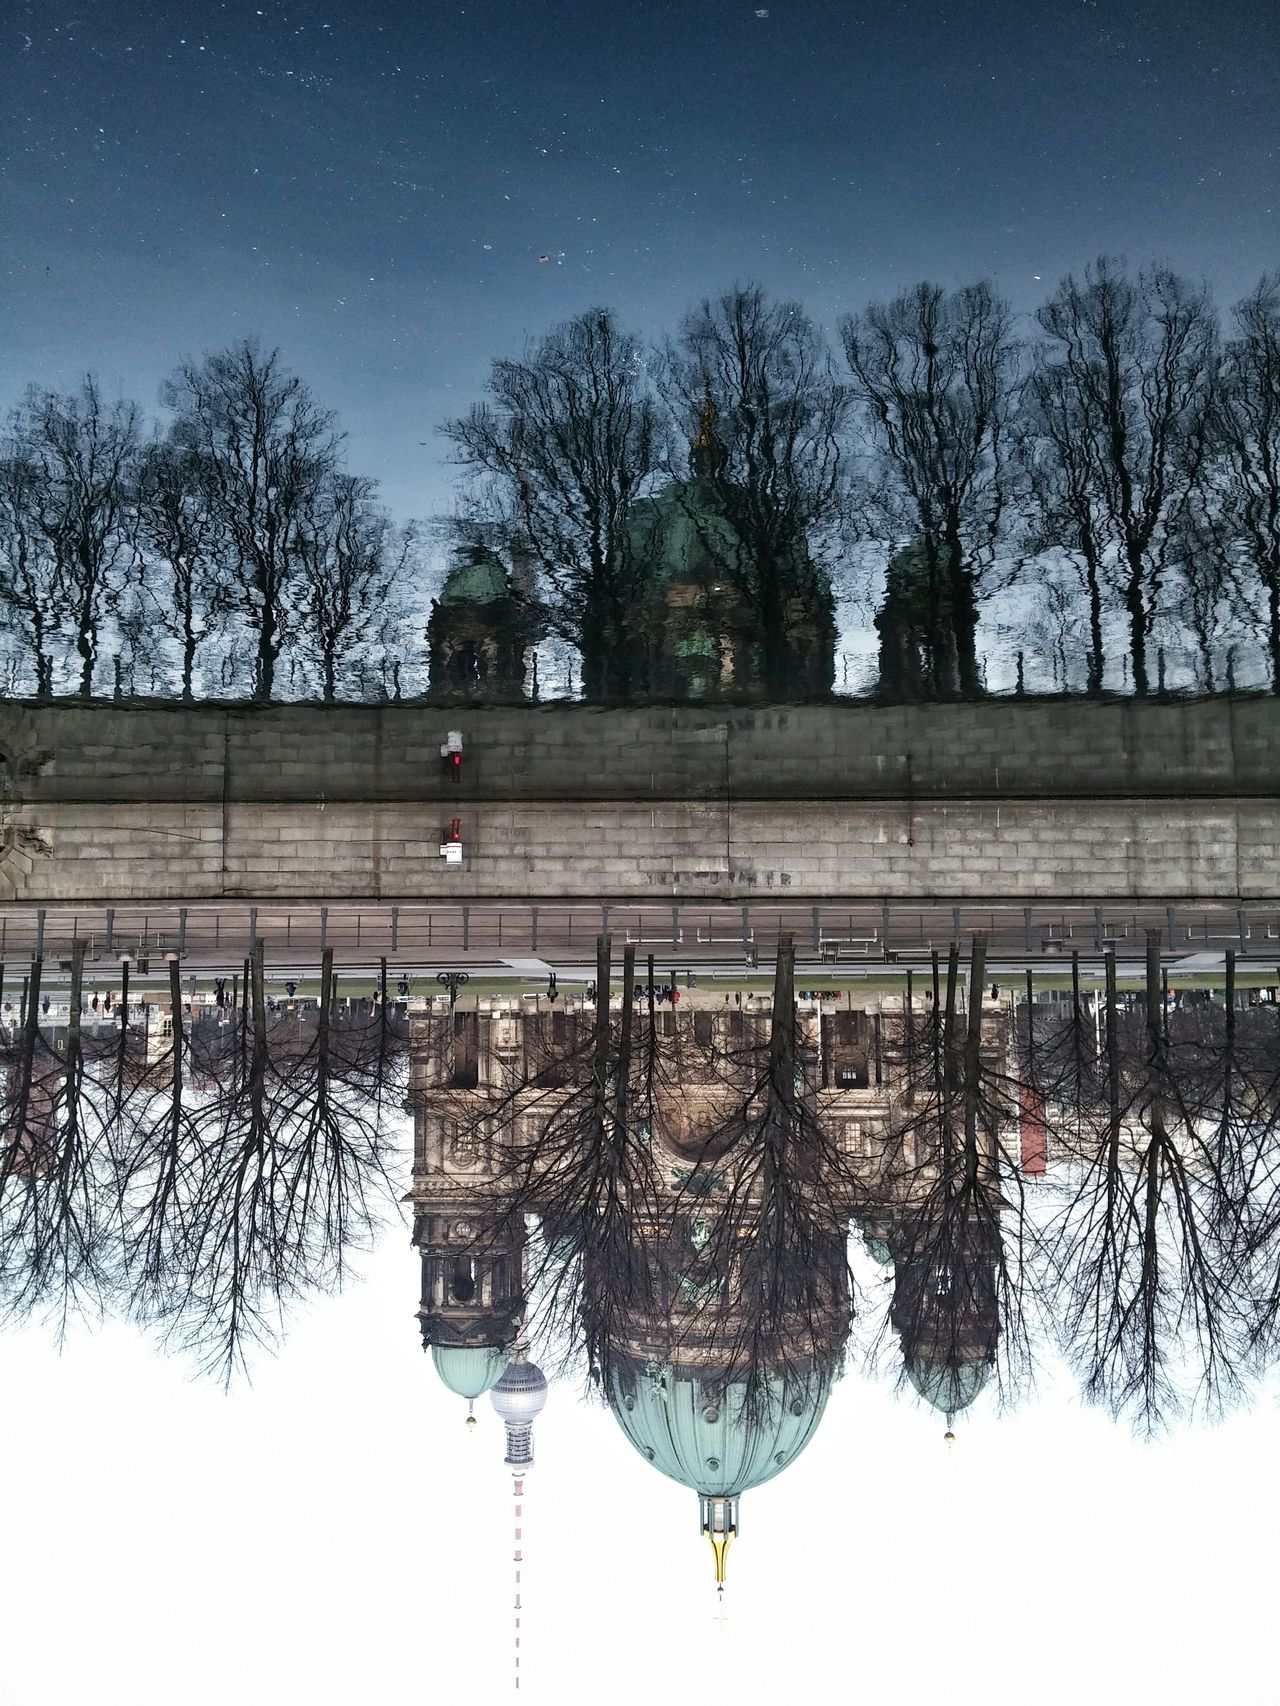 Landscapes With WhiteWall Travel Photography City Waterreflections  Reflection Traveling ColdMorning Berlin Germany Dayandnight Parallel Universe Thinktwice Anotherworld Mirror